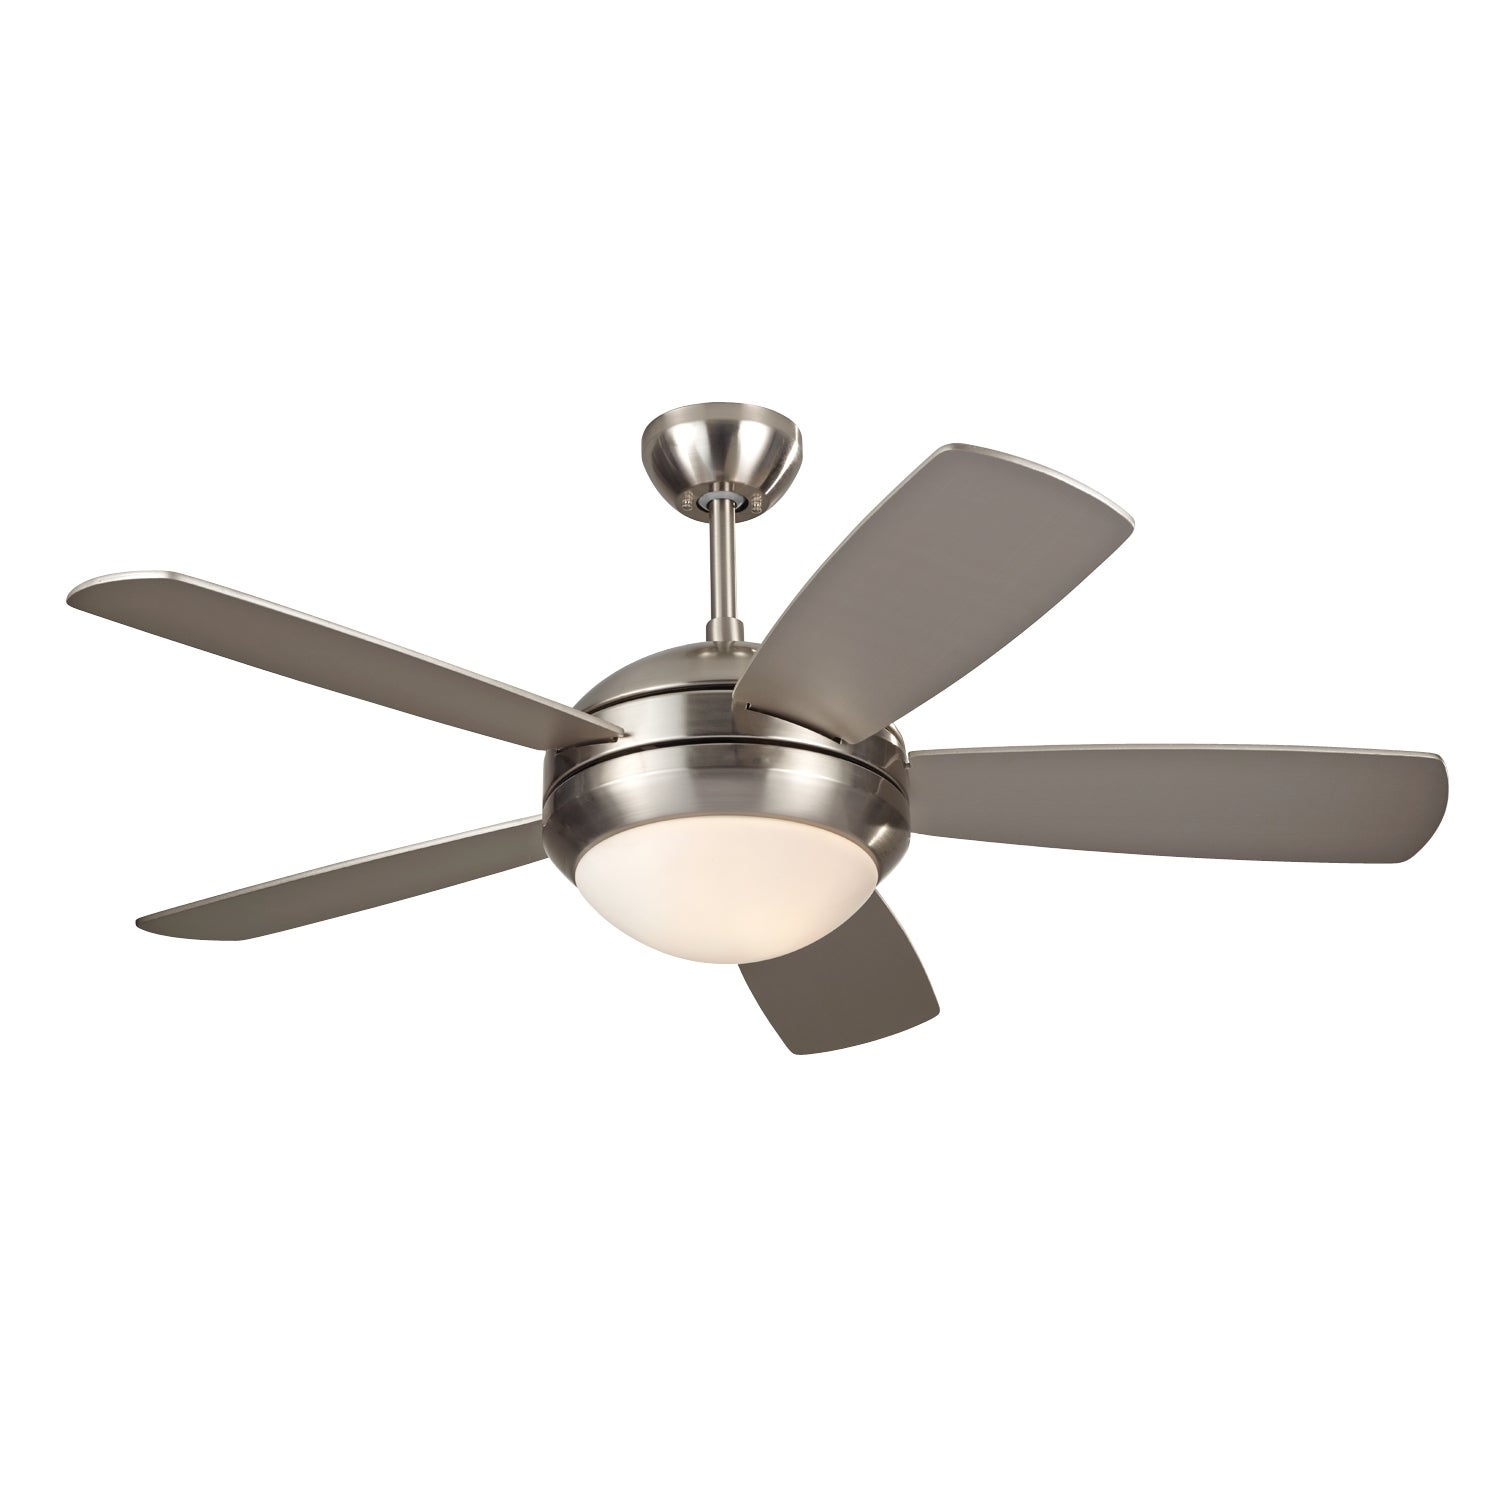 dp light finish blades fan kichler ceiling lighting patio inch and steel fans fresnel galvanized damp bay rated reversible glass hatteras with ceilings